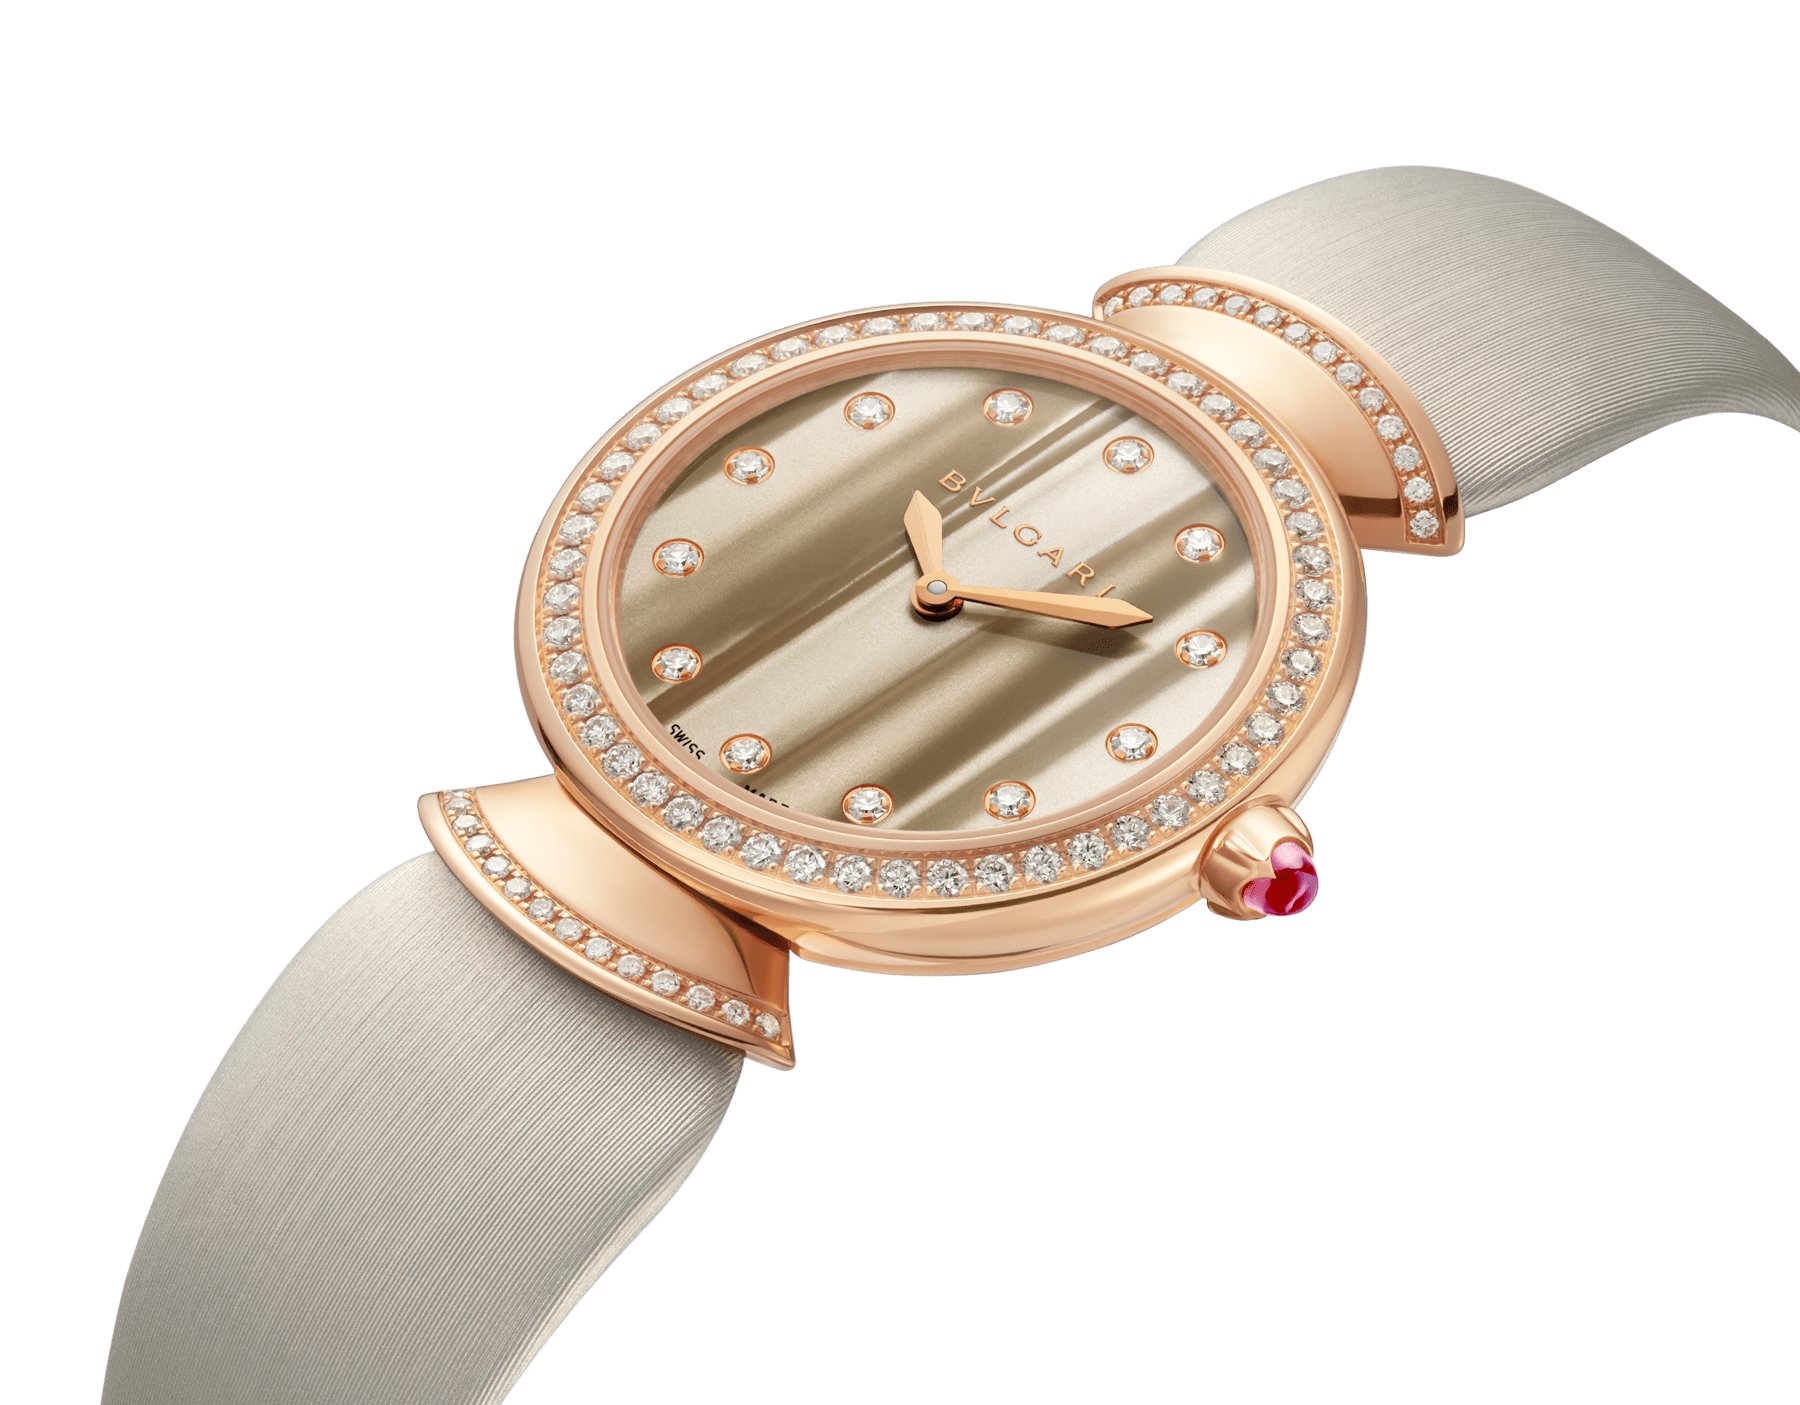 Montre DIVAS' DREAM avec boîtier en or rose 18 K serti de diamants taille brillant, cadran en acétate naturel, index sertis de diamants et bracelet en satin couleur bronze 102435 image 2